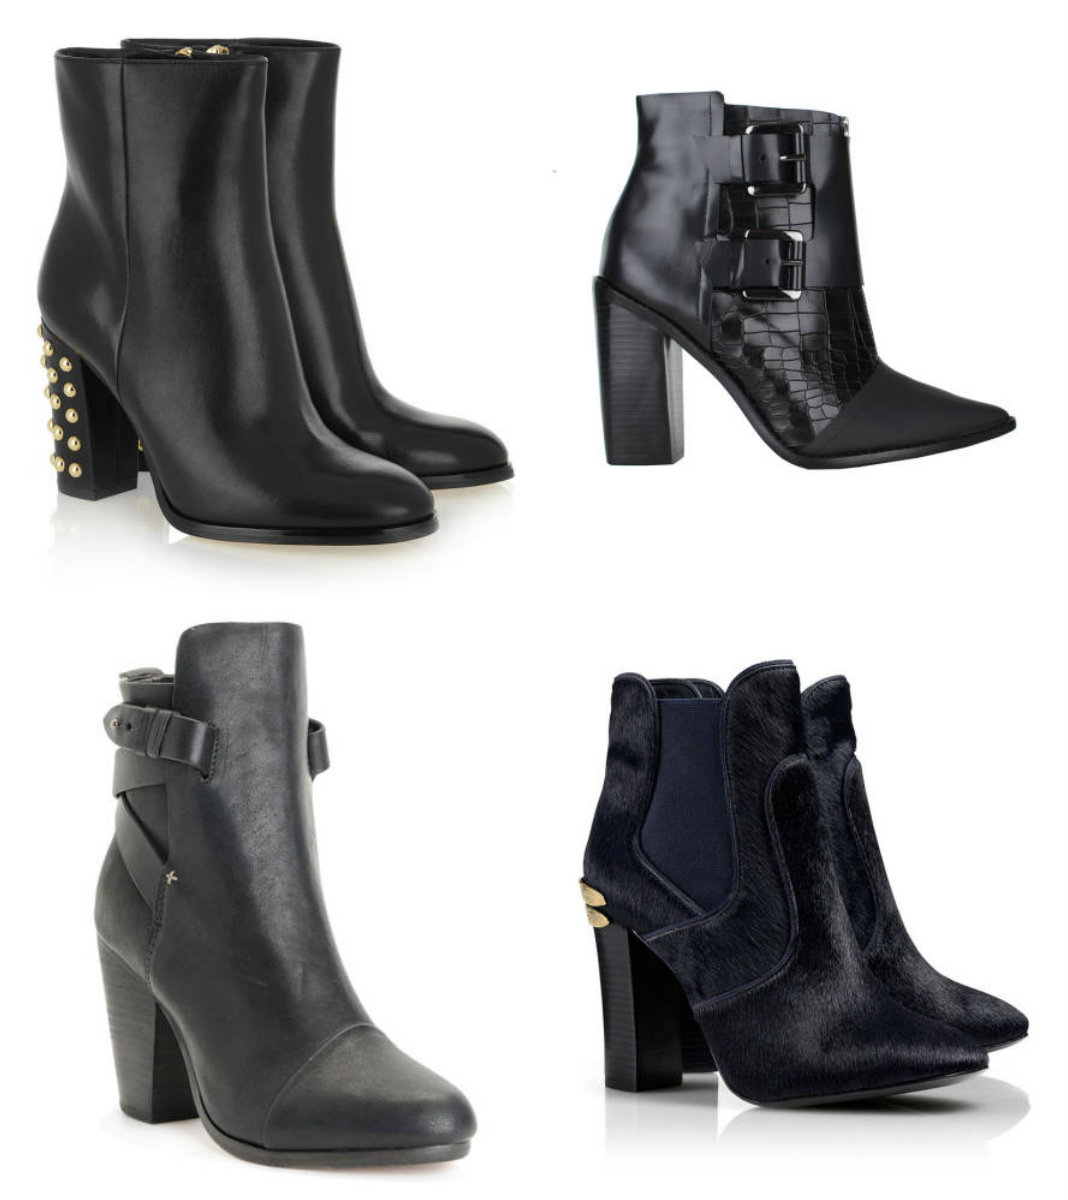 Boots for Fall-Winter 2013-2014